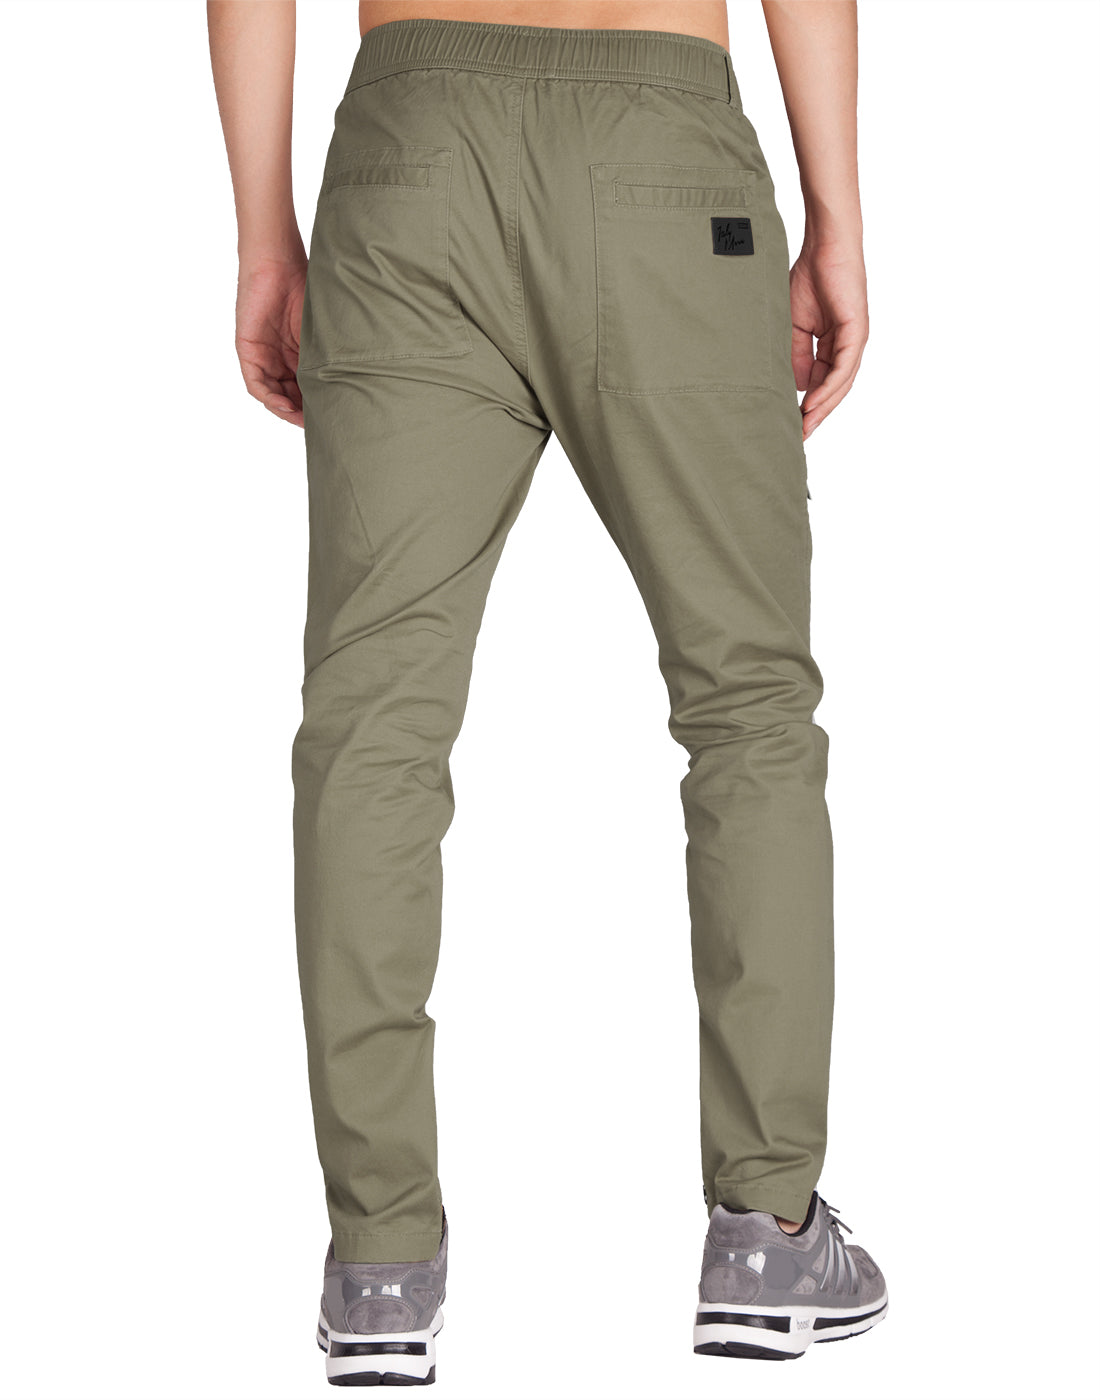 Man Designer Cargo Pants Grey Green - italymorn